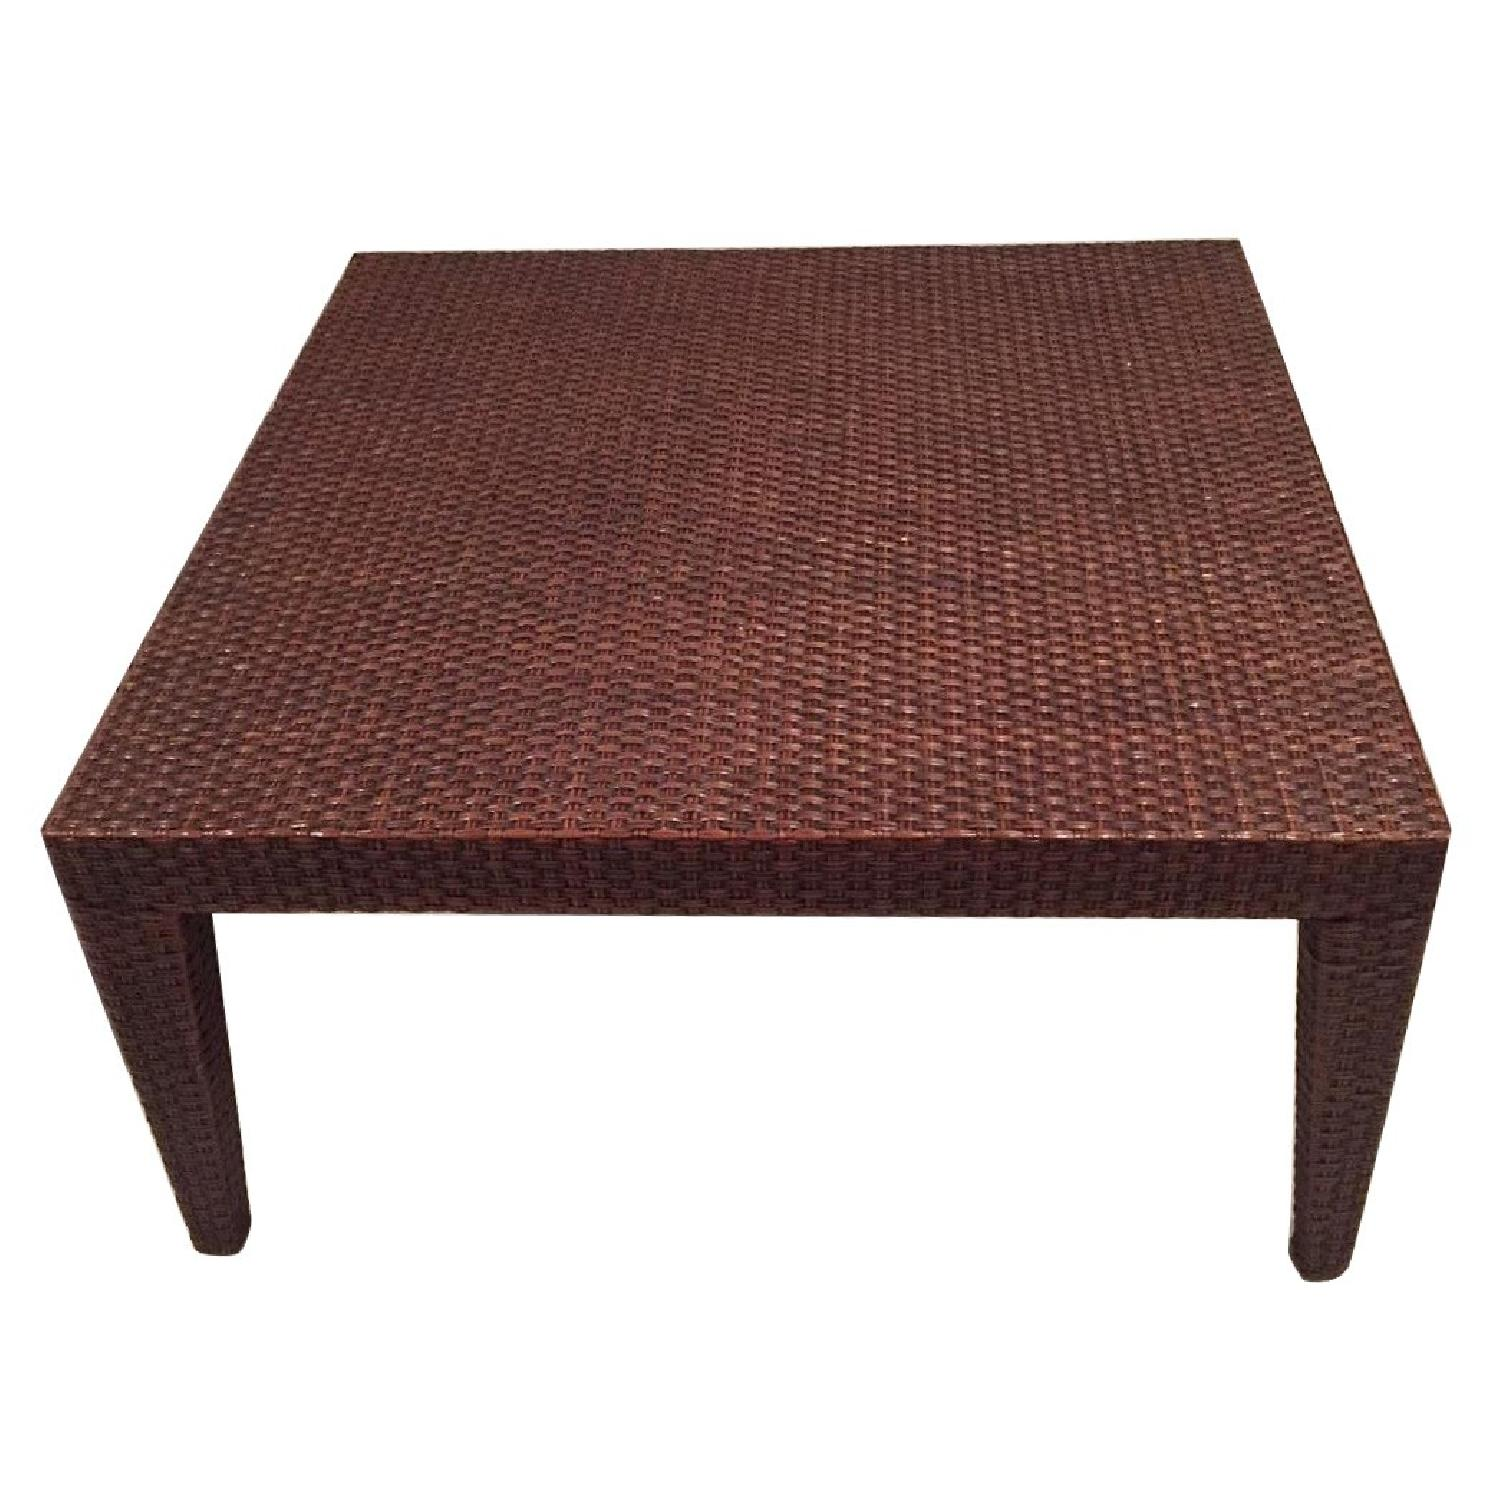 Mitchell Gold + Bob Williams Rattan Coffee Table